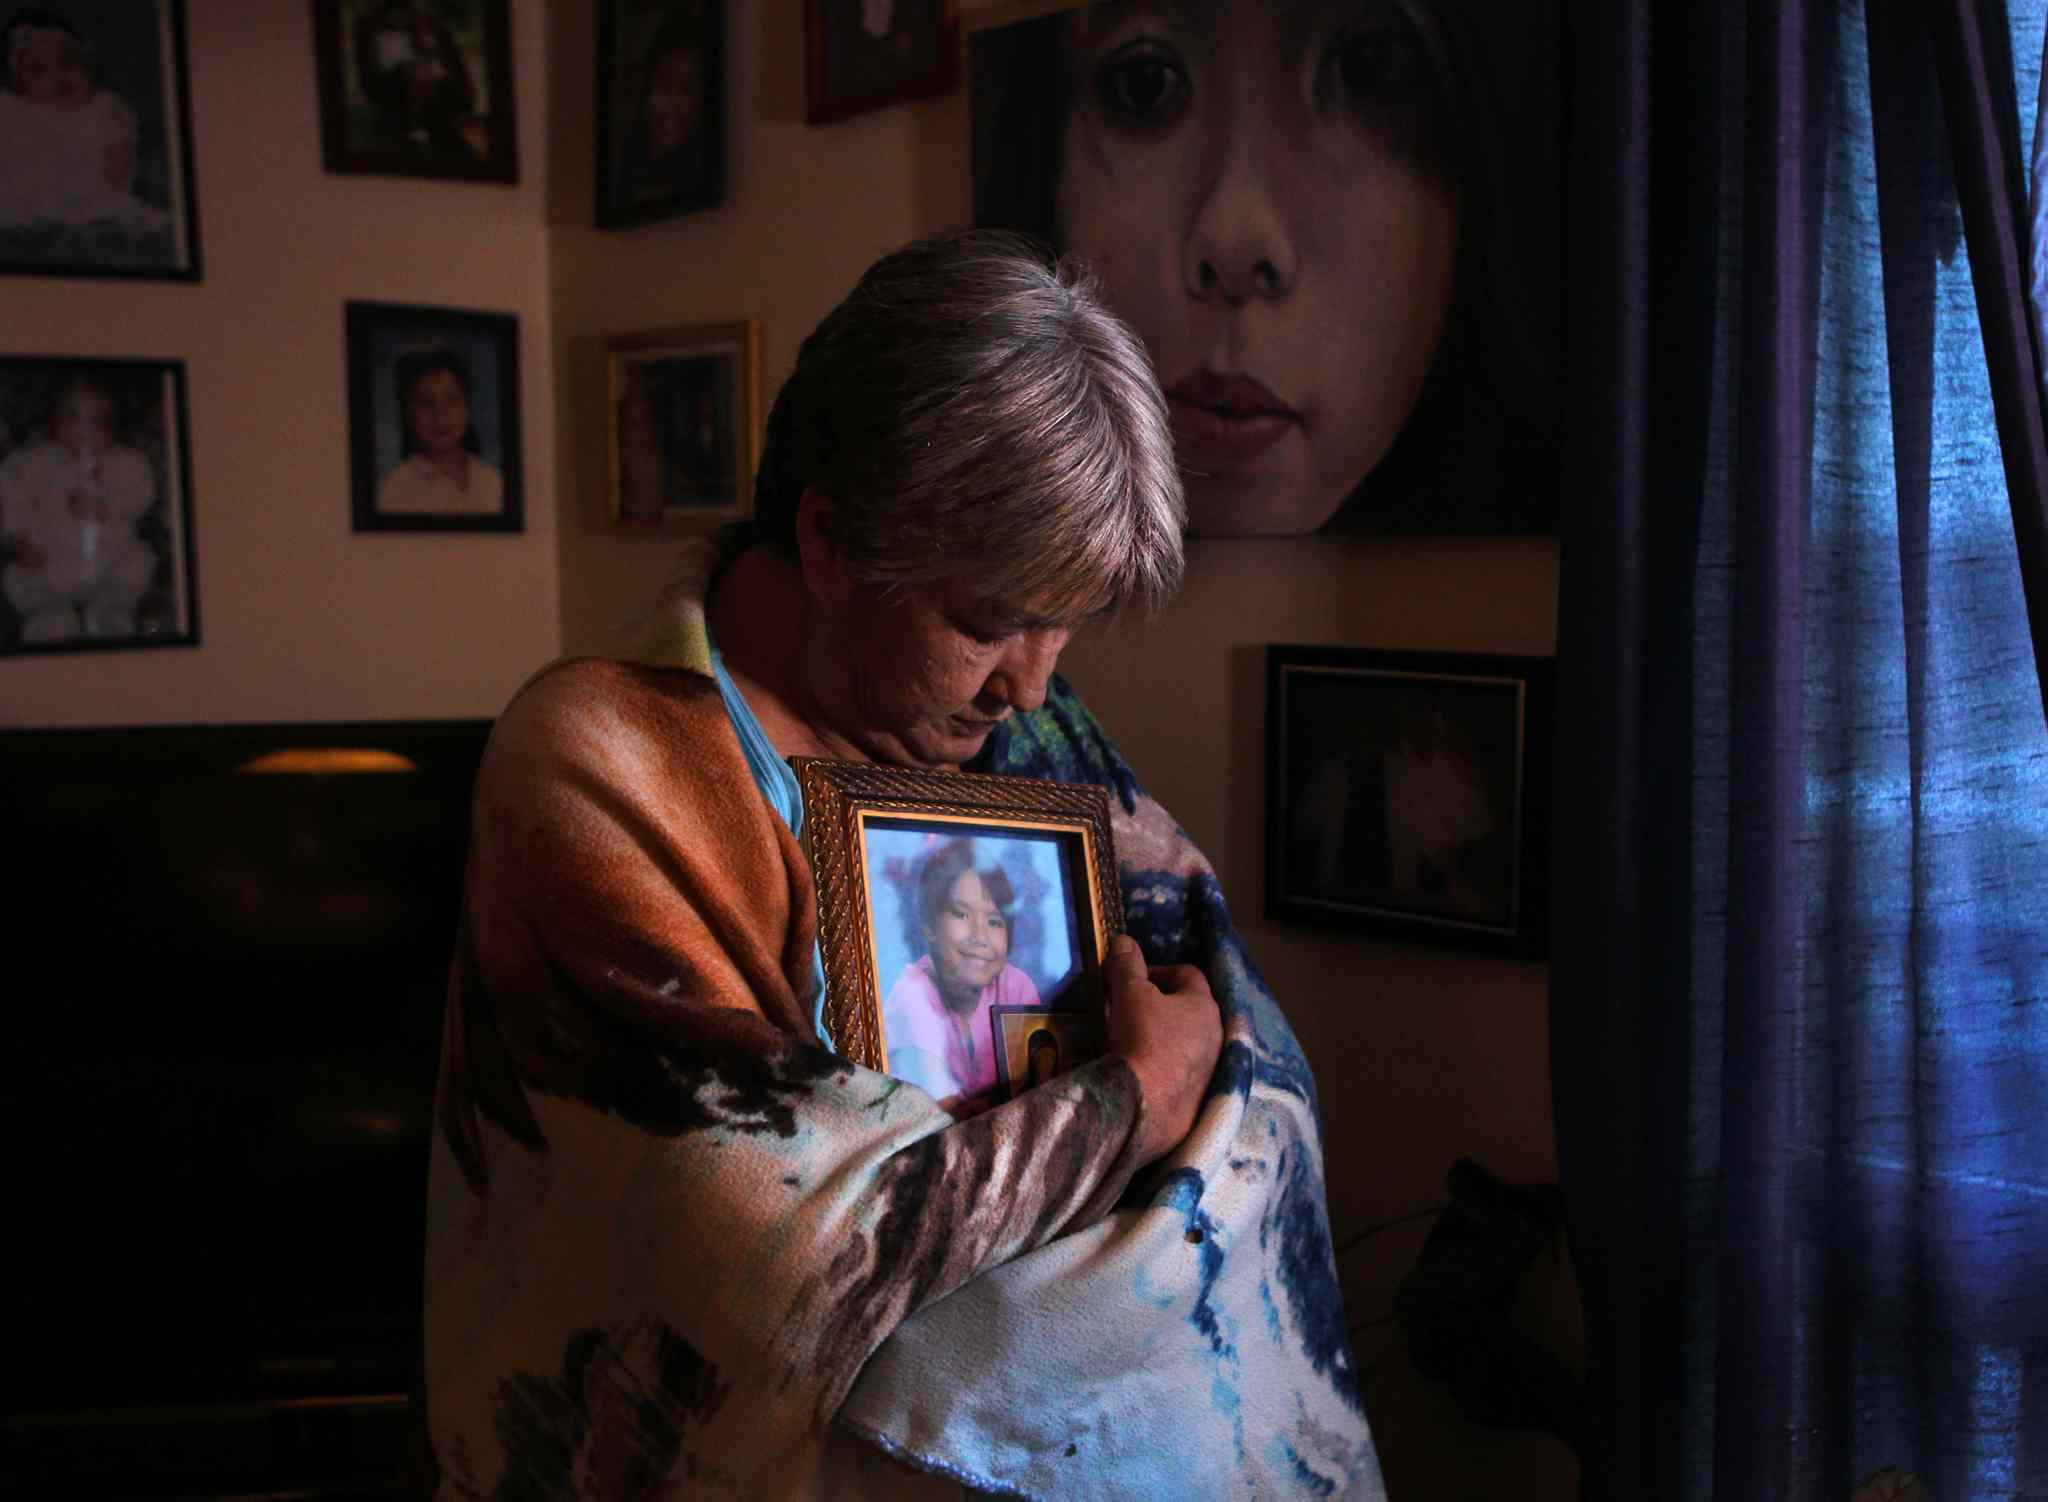 Tina Fontaine's Great Aunt, Thelma Favel holds back tears as she wraps herself in a blanket and hugs a photo of Tina next to a window in her home in Sagkeeng First Nation on Dec. 11.  Next to her is a wall of photos of Tina with family members as well as a painting of Tina sent to her by a stranger. (Ruth Bonneville / Winnipeg Free Press)